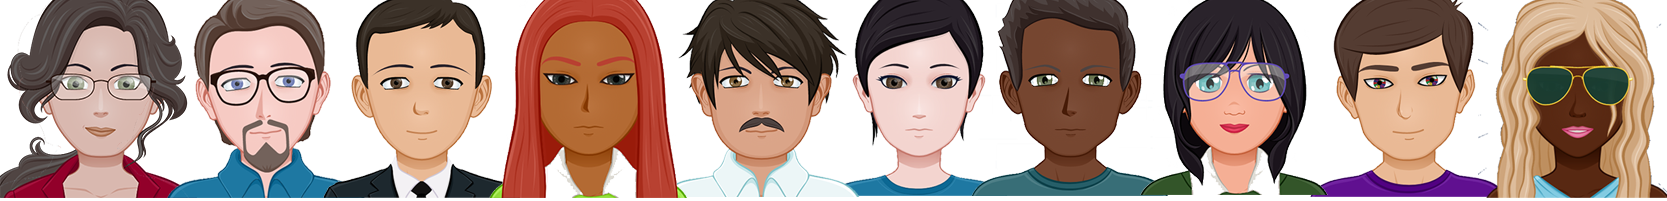 Avatars-team2